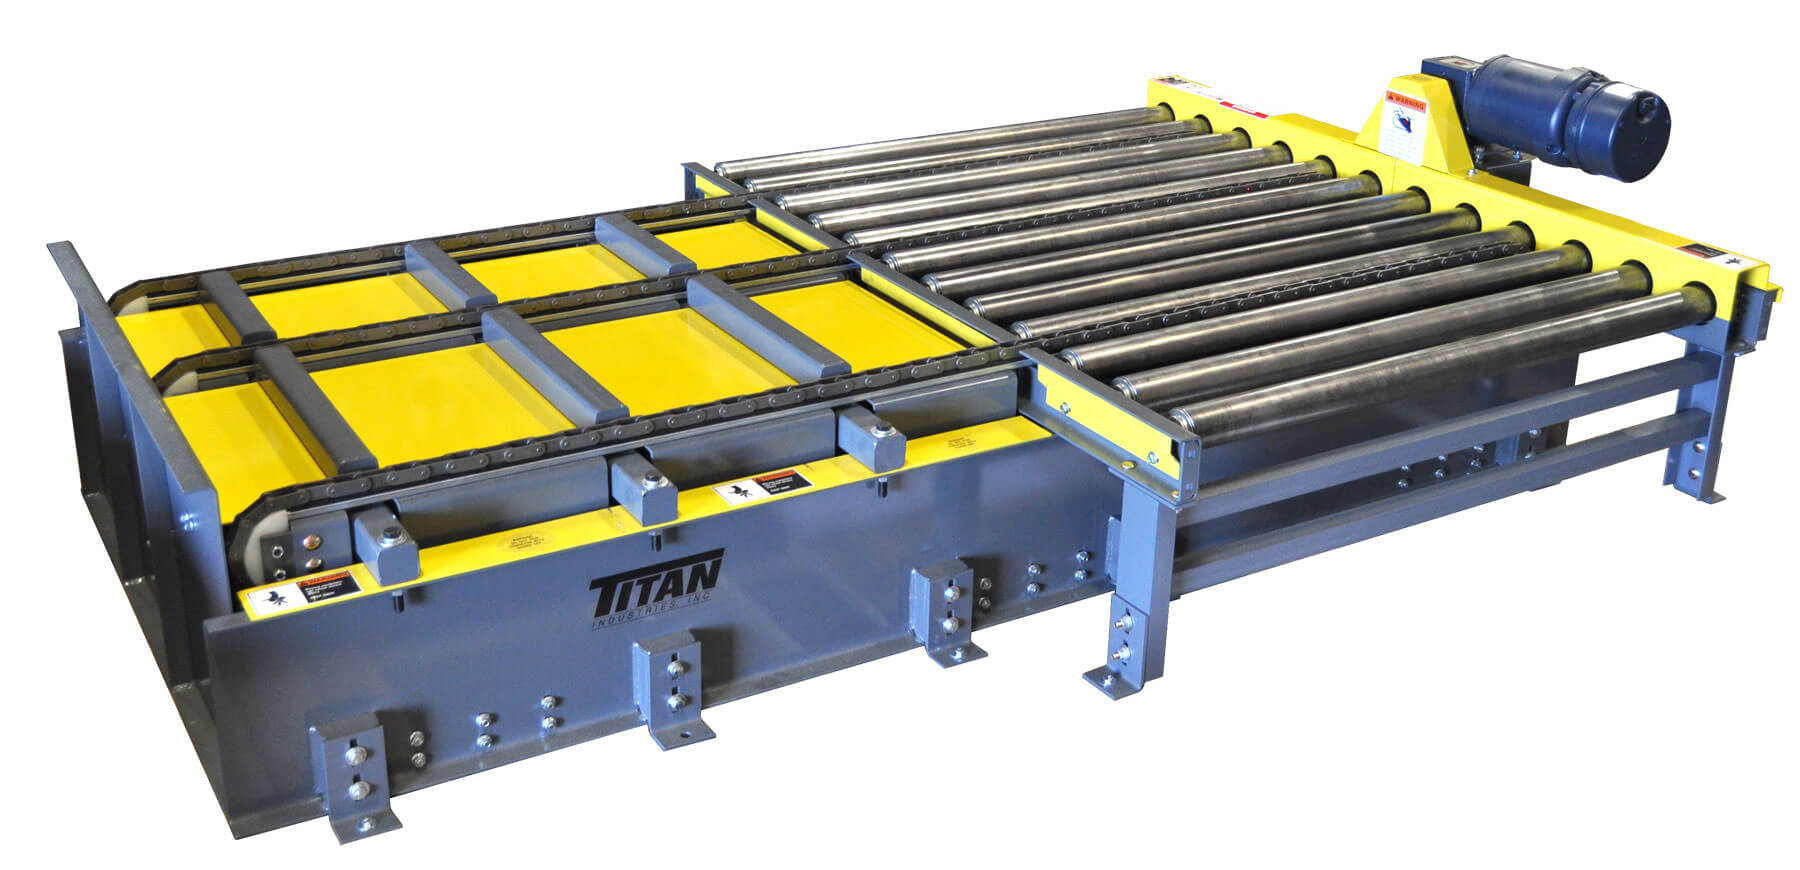 Transfer Roller Pallet Centering Lifts And Crowder